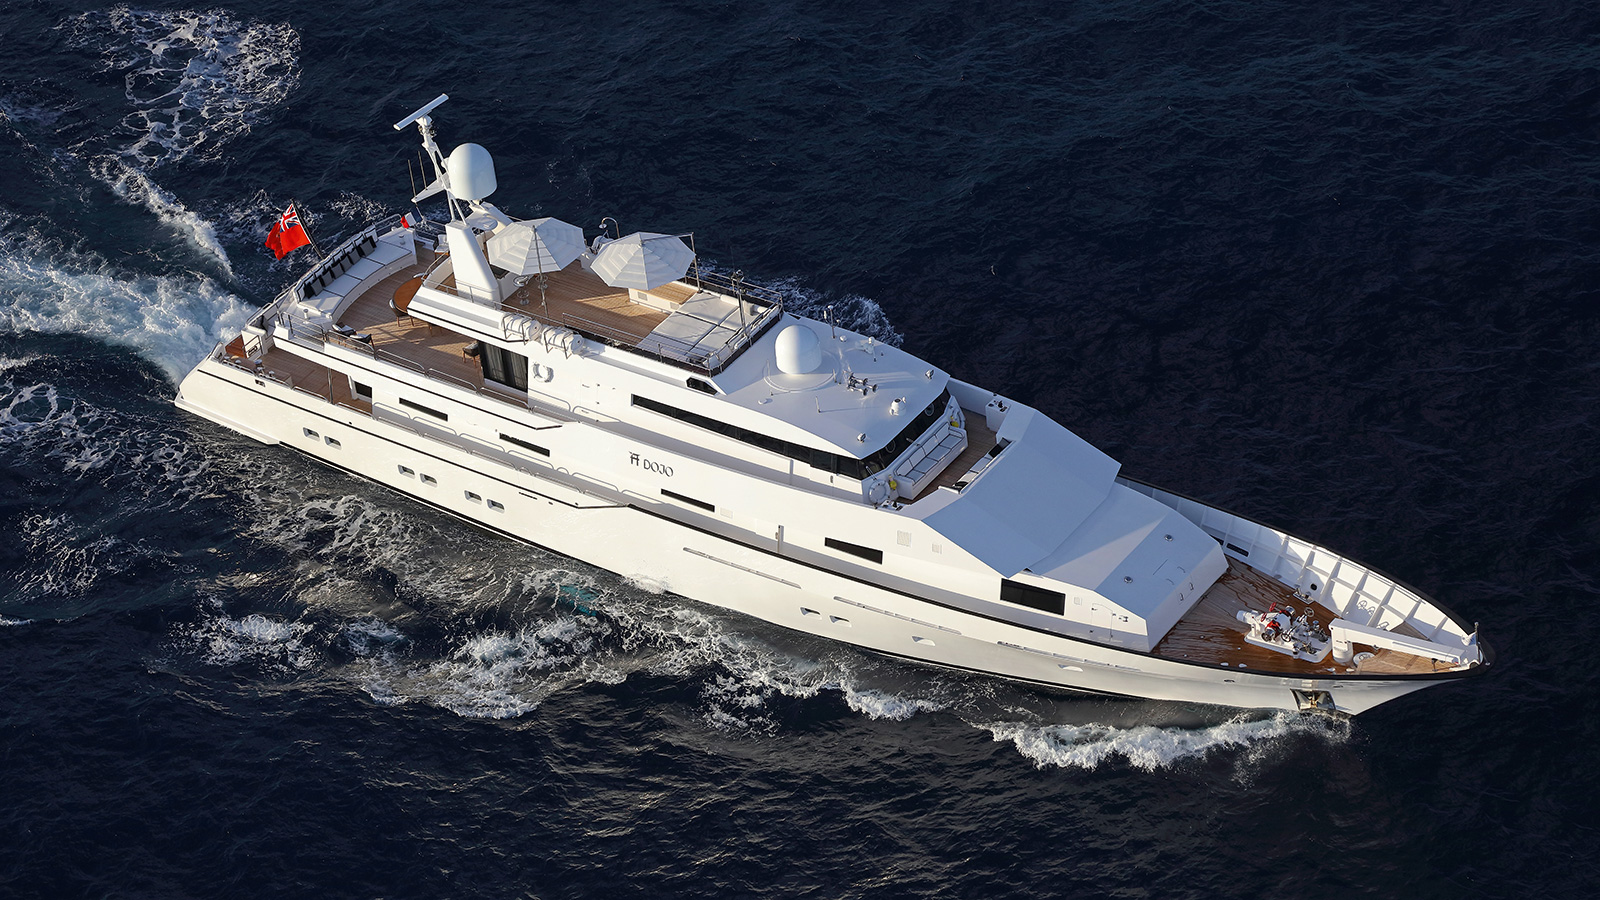 running-shot-of-the-refitted-feadship-motor-yacht-dojo-credit-thierry-ameller